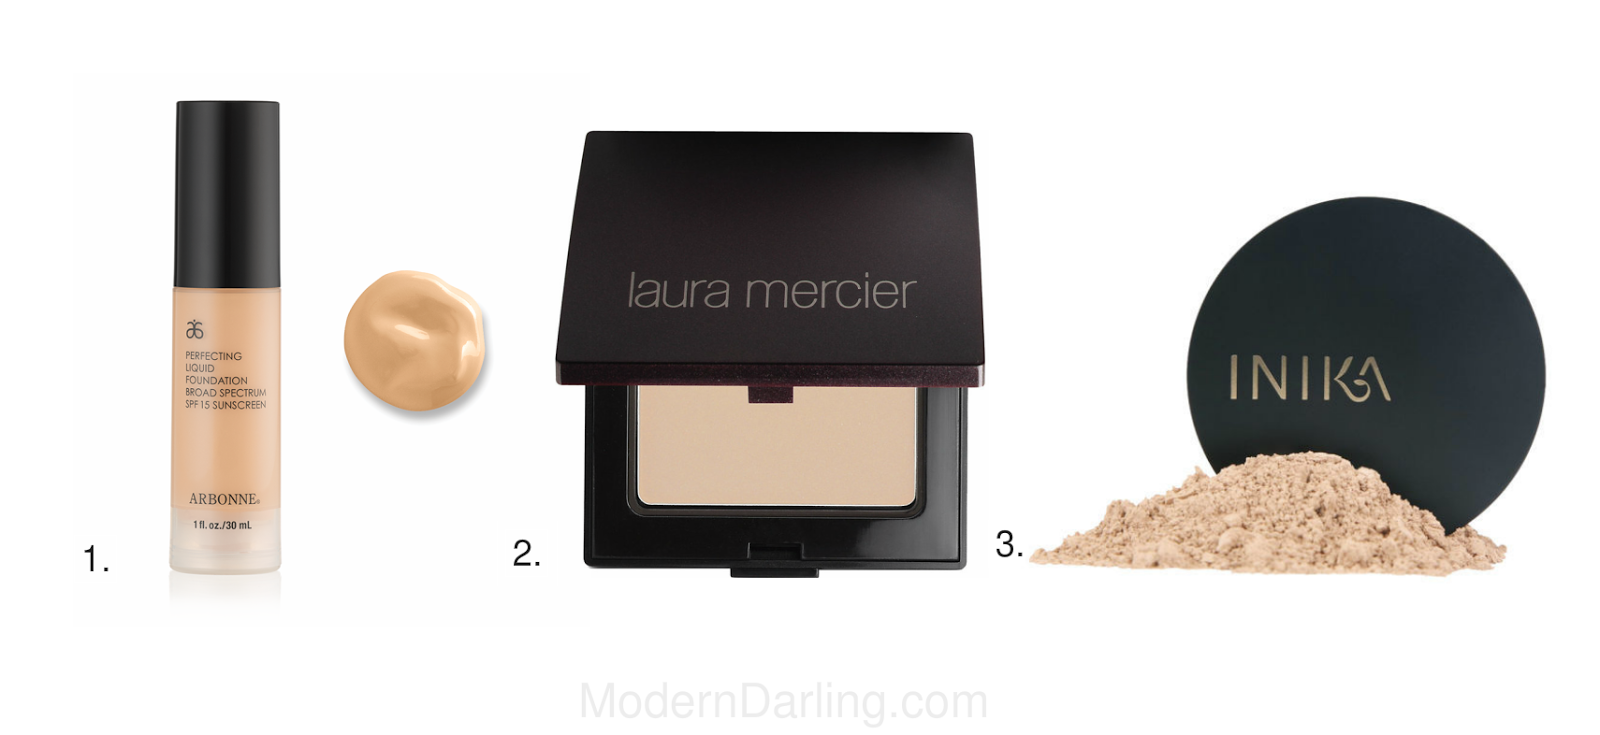 arbonne perfecting liquid foundation laura mercier mineral pressed powder inika mineral powder foundation for oily skin